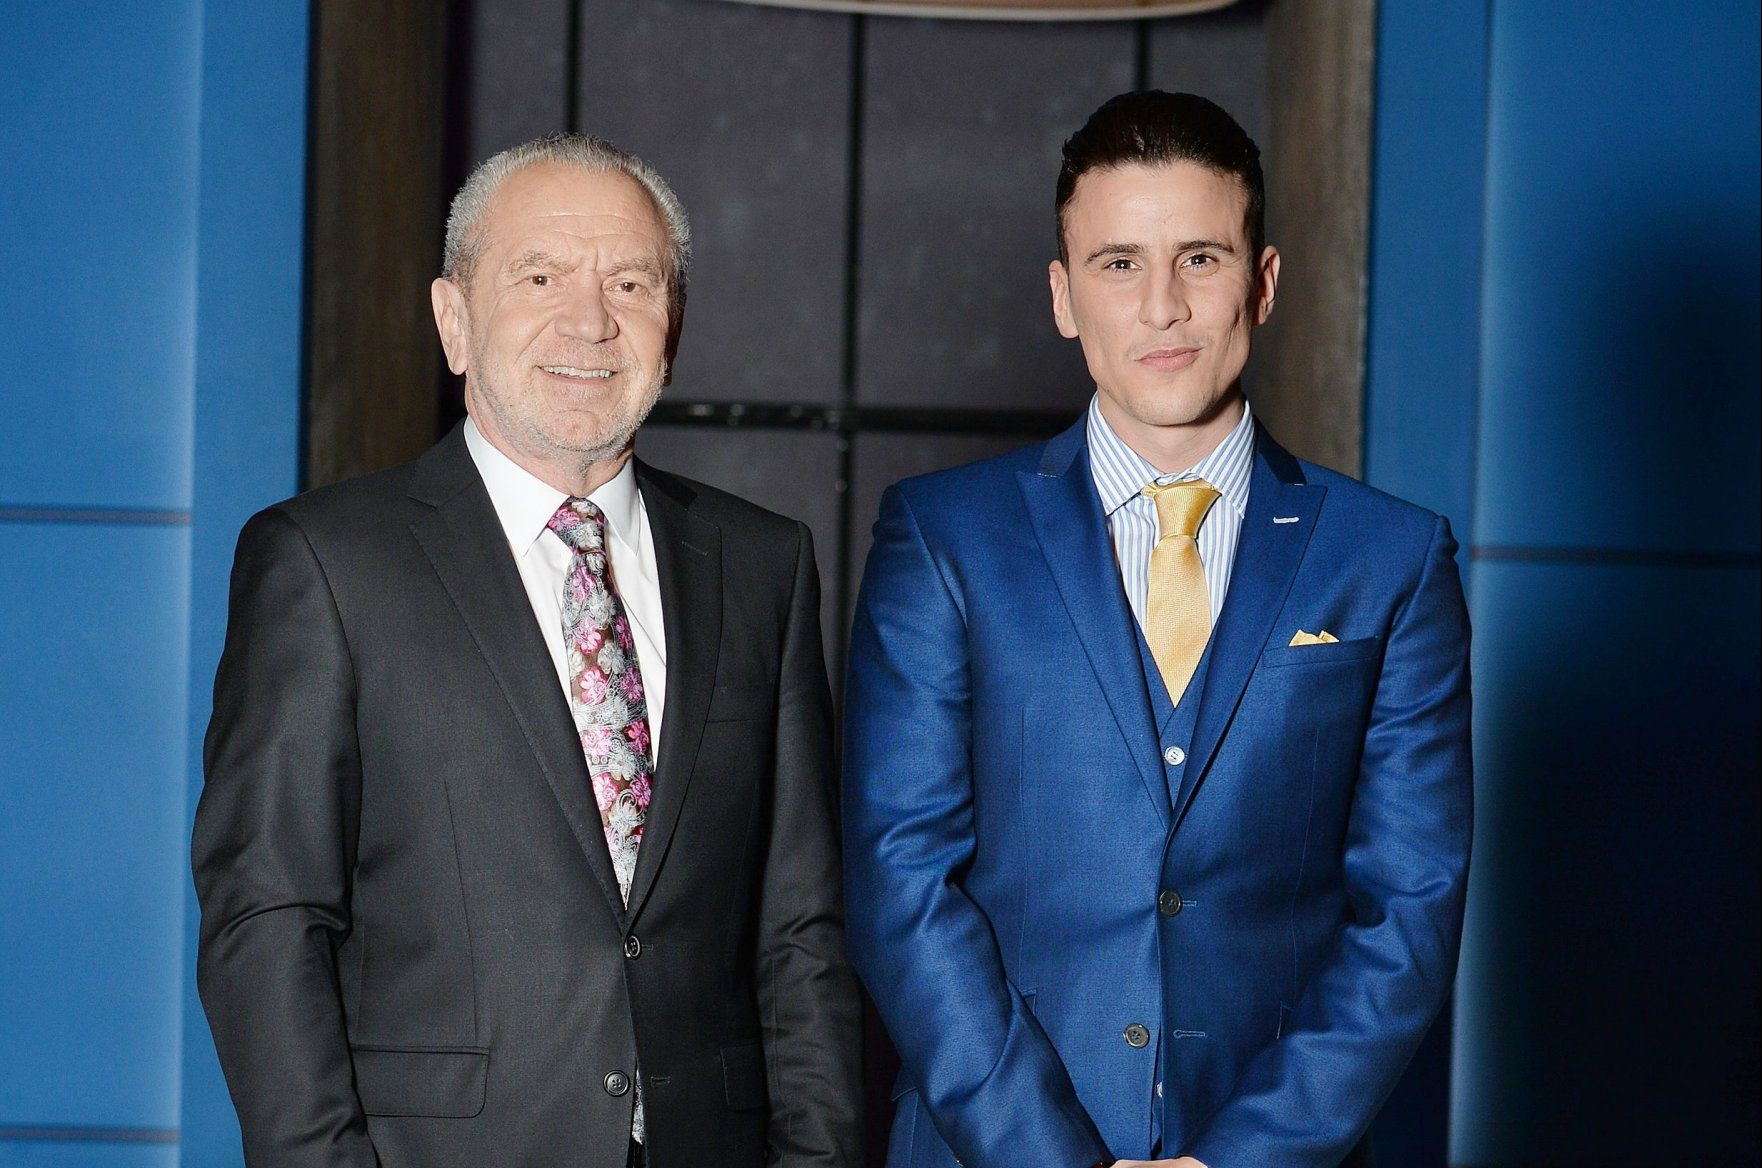 Lord Sugar parts ways with The Apprentice champion Joseph Valente less than two years after he won